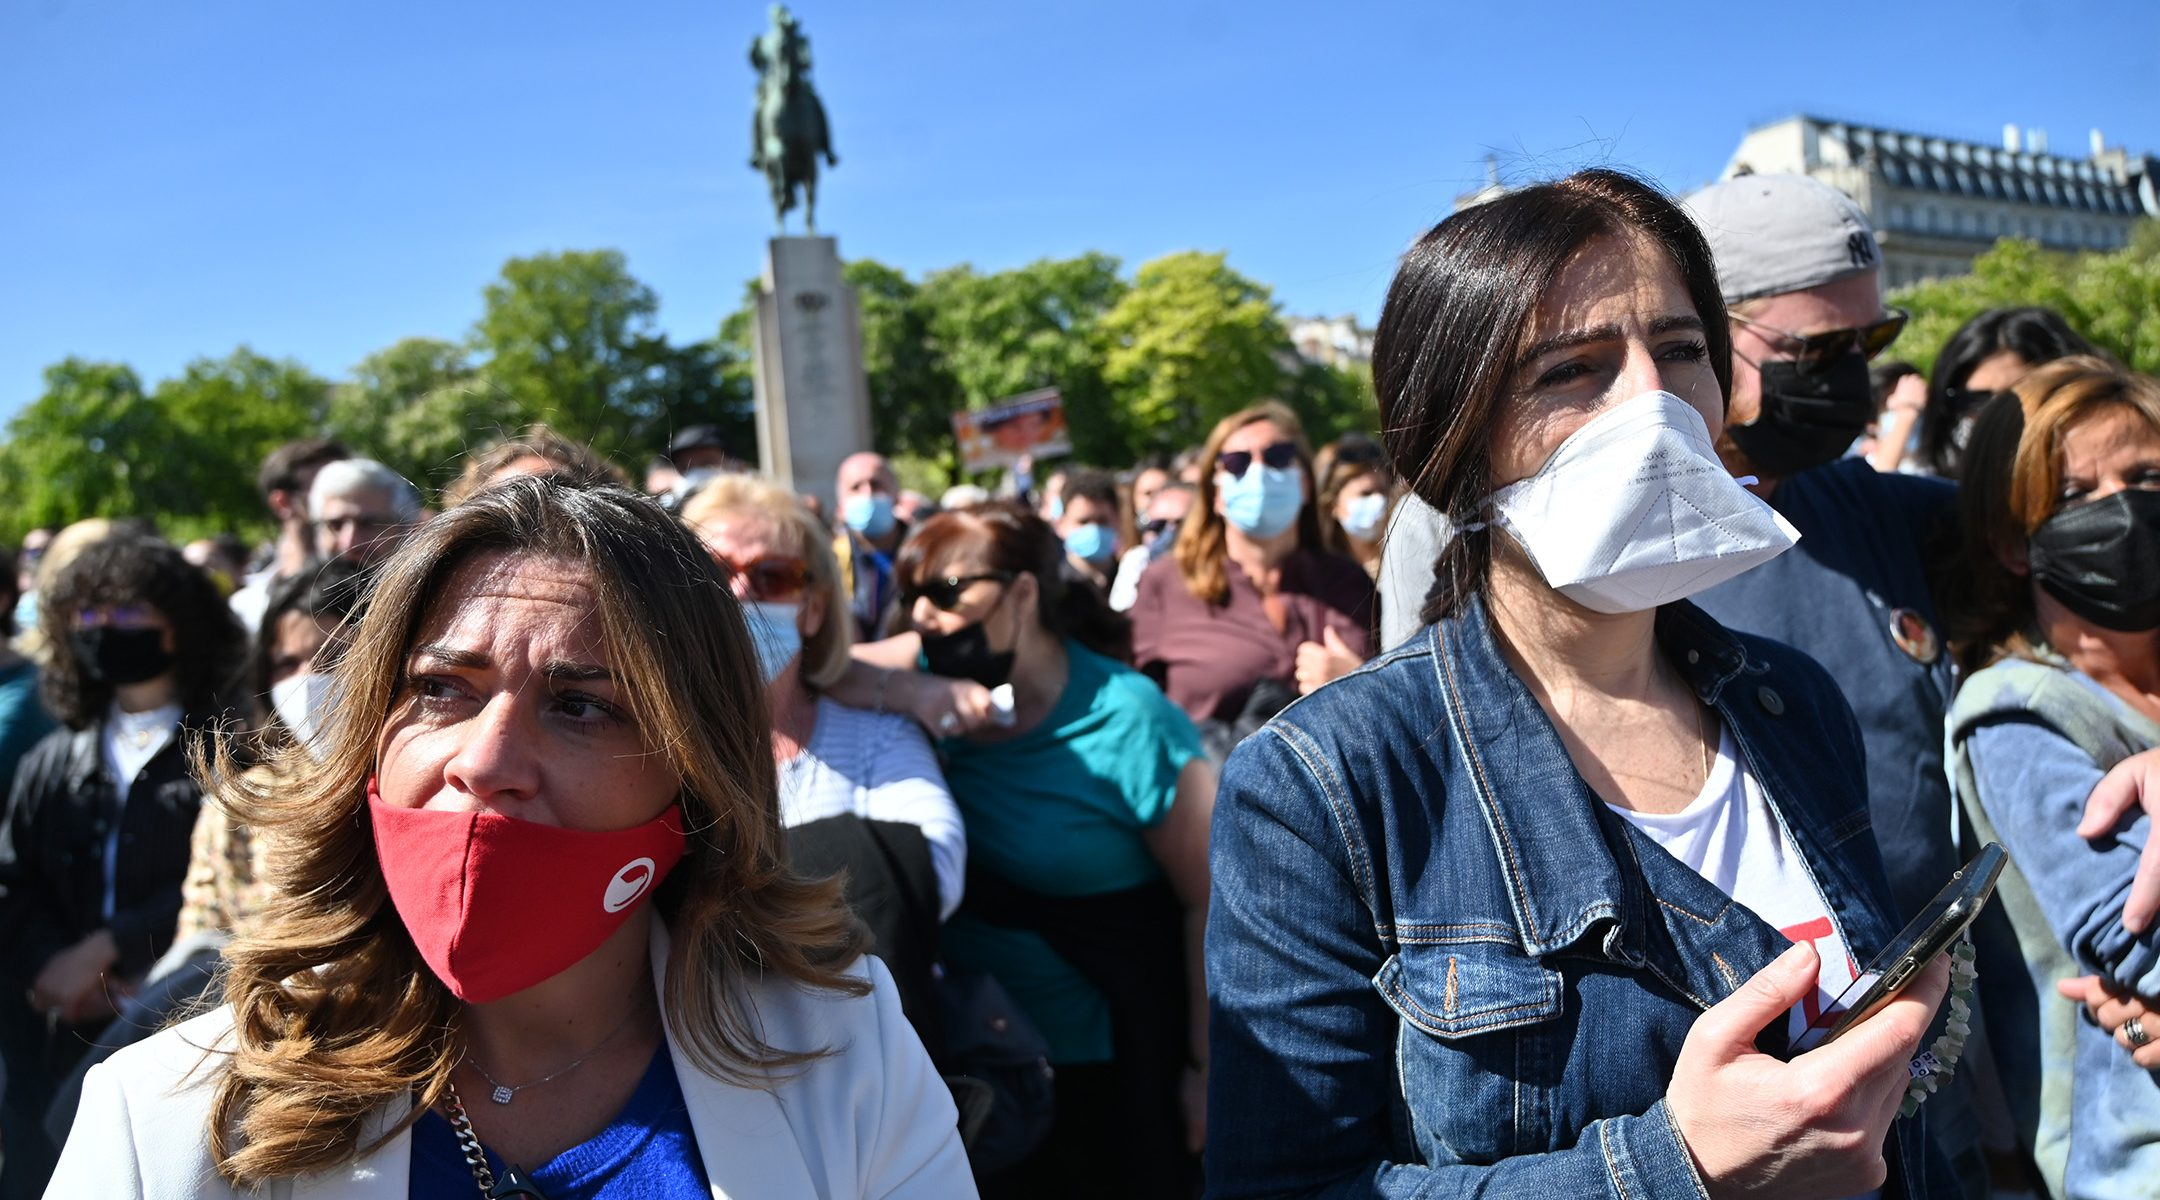 Protesters attend the 'Justice for Sarah Halimi' rally in Paris, France on April 25, 2021. (Cnaan Liphshiz)